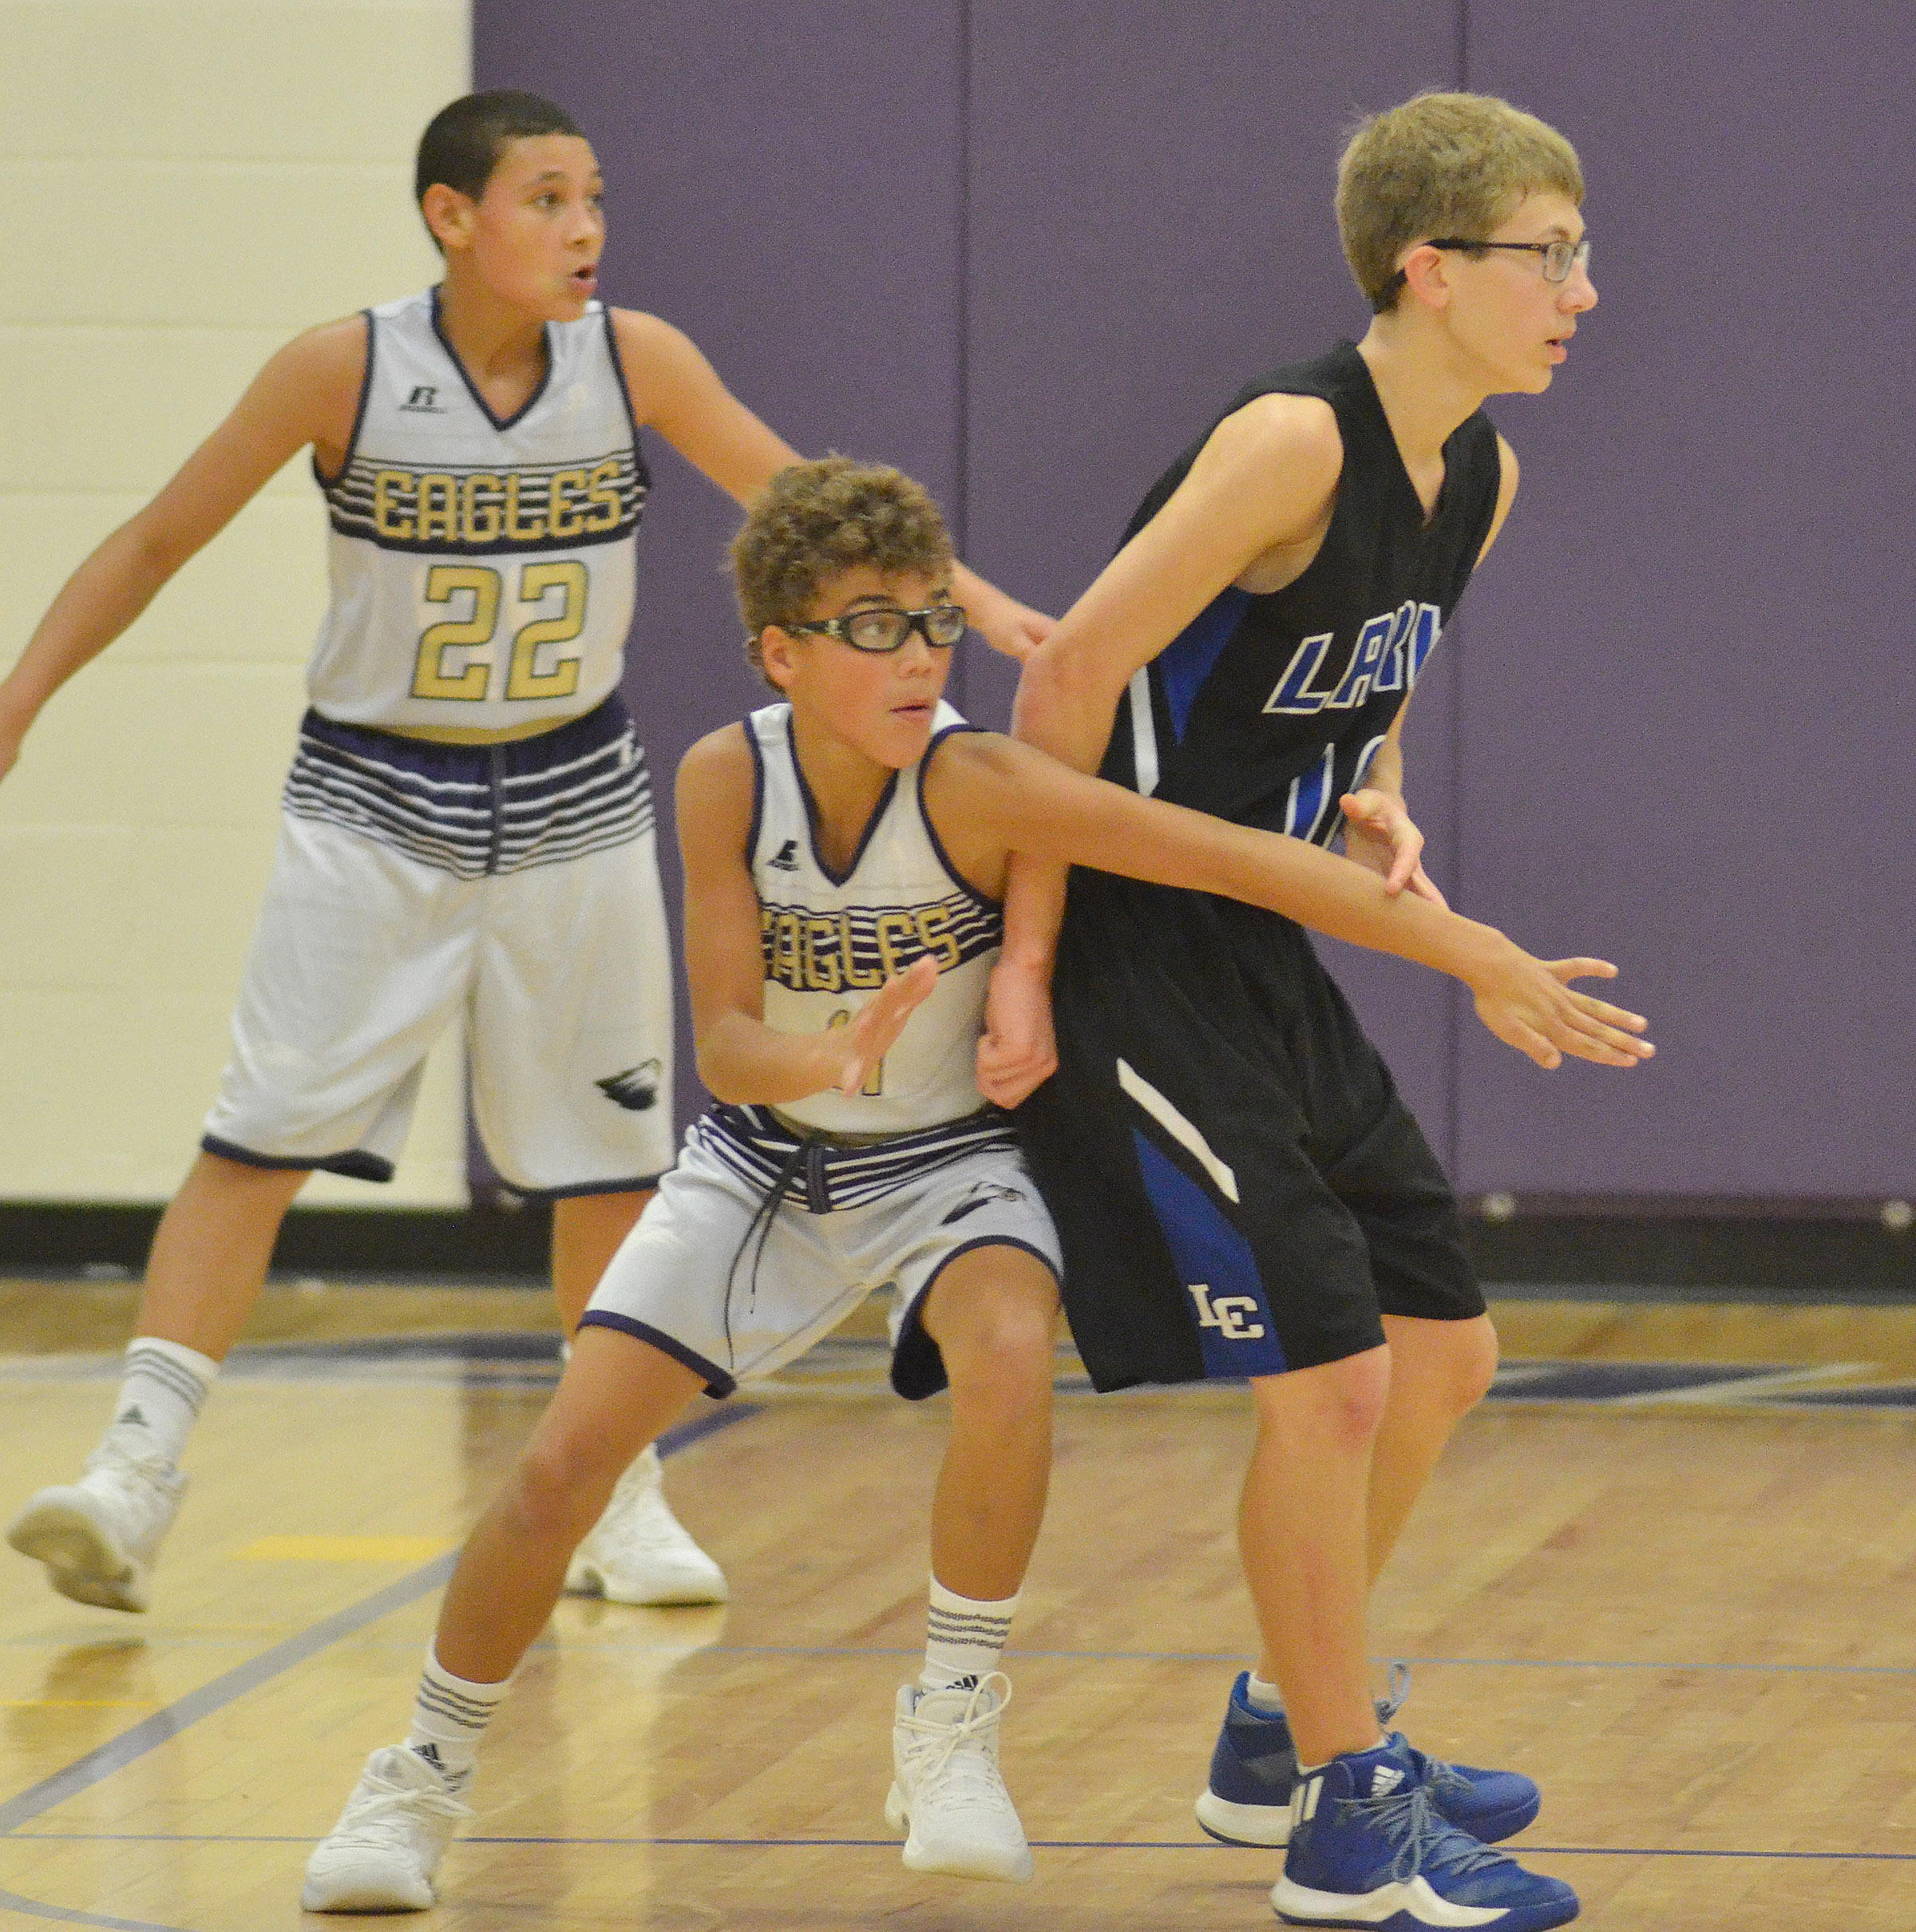 CMS eighth-graders Brice Spaw, at left, and Logan Phillips play defense.